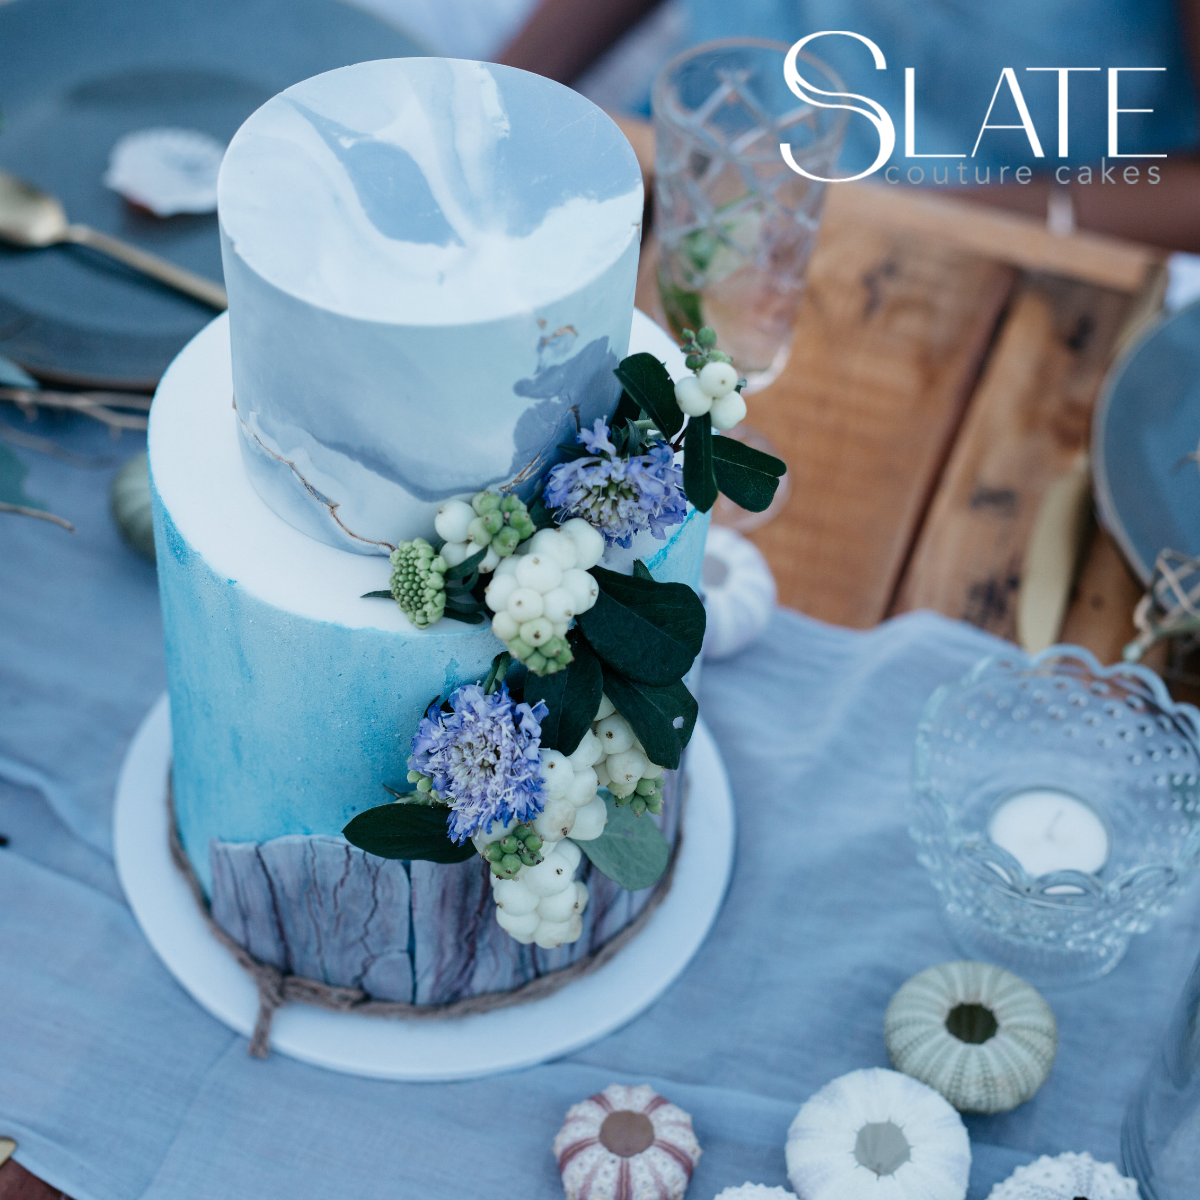 Baby blue marbled fondant wedding cake with sugar flowers